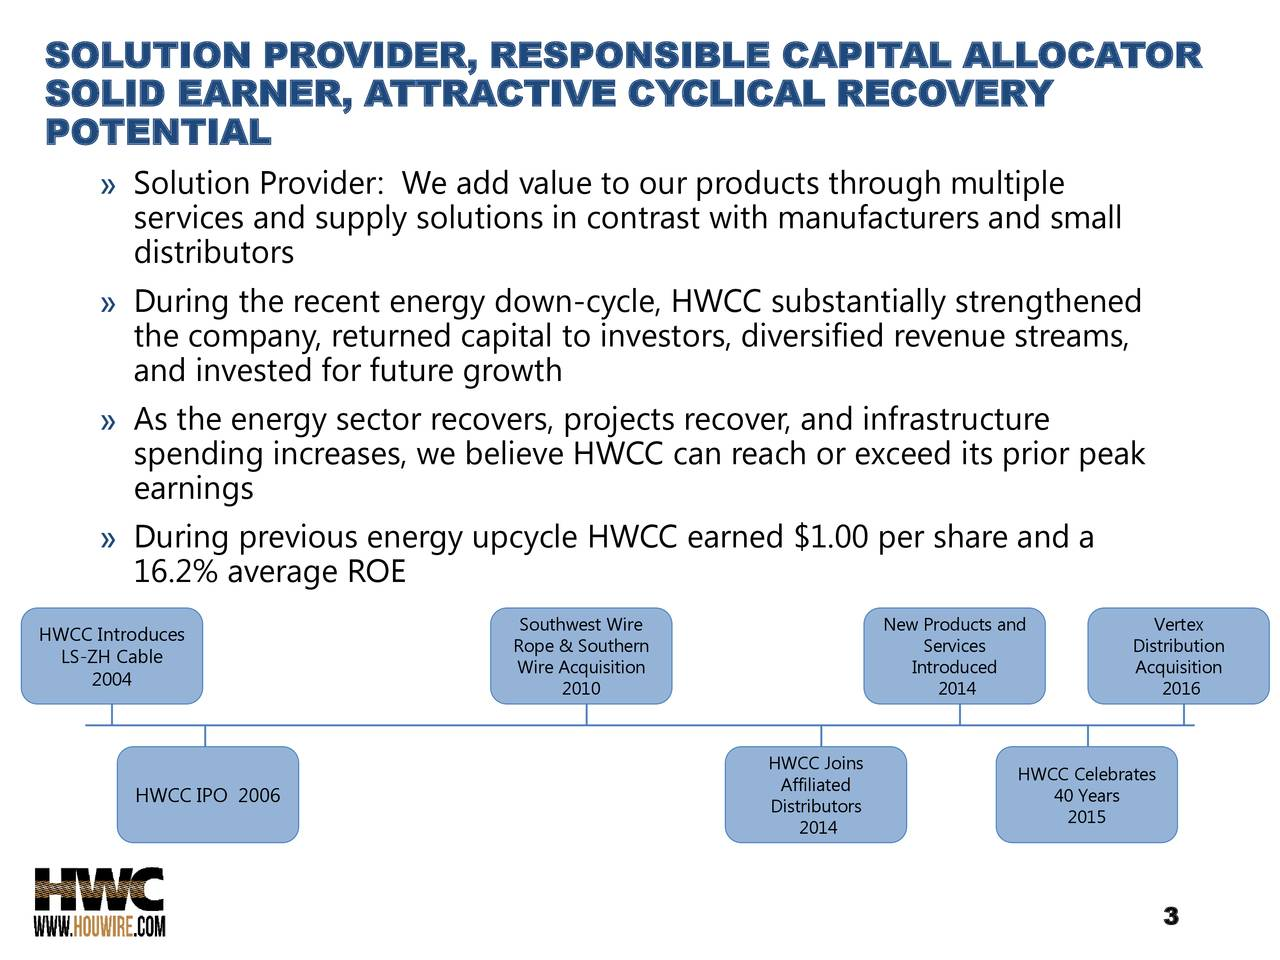 SOLID EARNER, ATTRACTIVE CYCLICAL RECOVERY POTENTIAL » Solution Provider: We add value to our products through multiple services and supply solutions in contrast with manufacturers and small distributors » During the recent energy down-cycle, HWCC substantially strengthened the company, returned capital to investors, diversified revenue streams, and invested for future growth » As the energy sector recovers, projects recover, and infrastructure spending increases, we believe HWCC can reach or exceed its prior peak earnings » During previous energy upcycle HWCC earned $1.00 per share and a 16.2% average ROE HWCC Introduces Southwest Wire New Products and Vertex LS-ZH Cable RWire Acquisition Introduced Acquisitionn 2004 2010 2014 2016 HWCC Joins HWCC Celebrates HWCC IPO 2006 Affiliated 40 Years Dis2014utors 2015 3